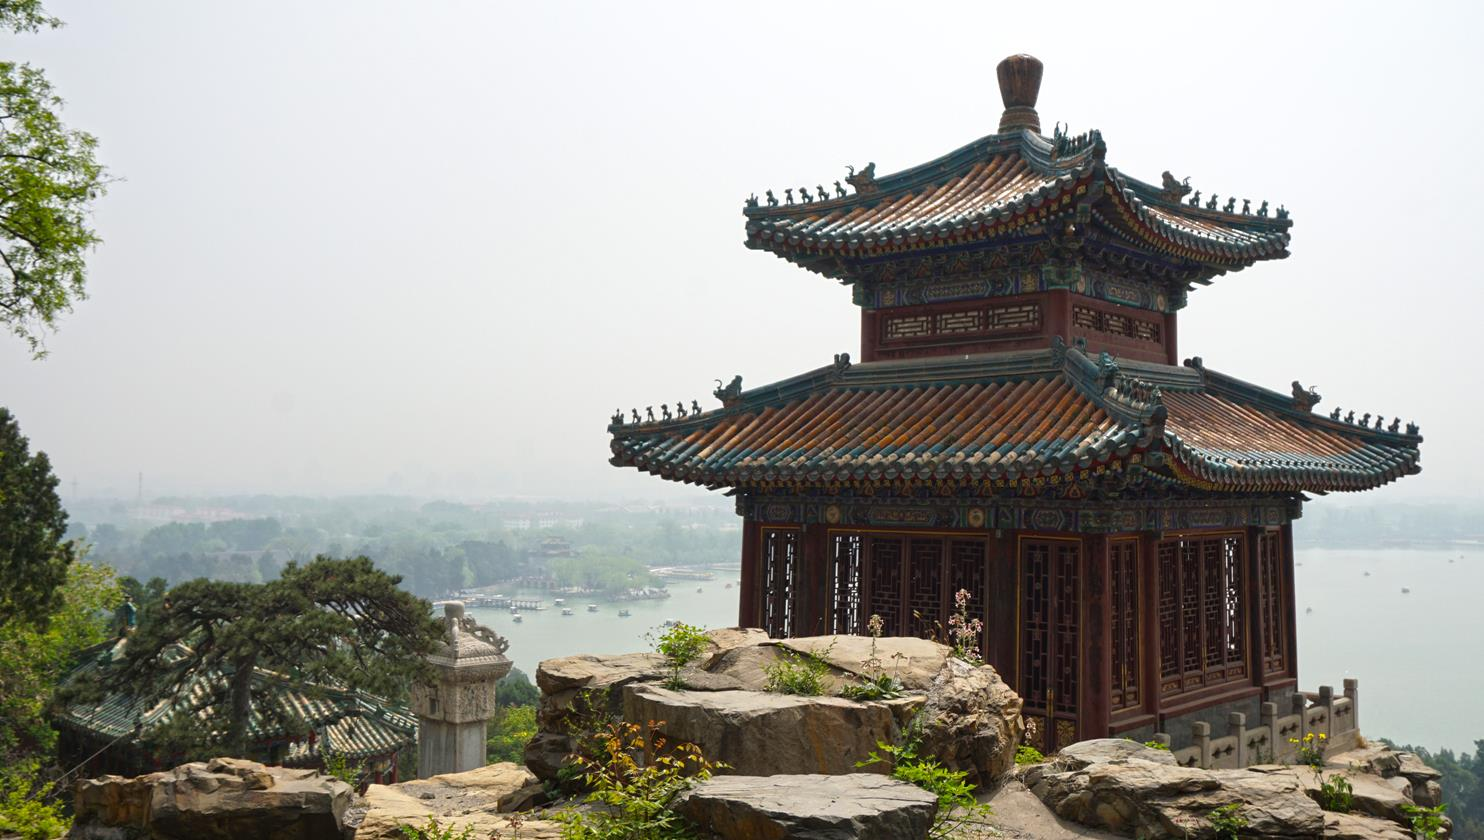 Pavilion of Precious Clouds at Summer palace